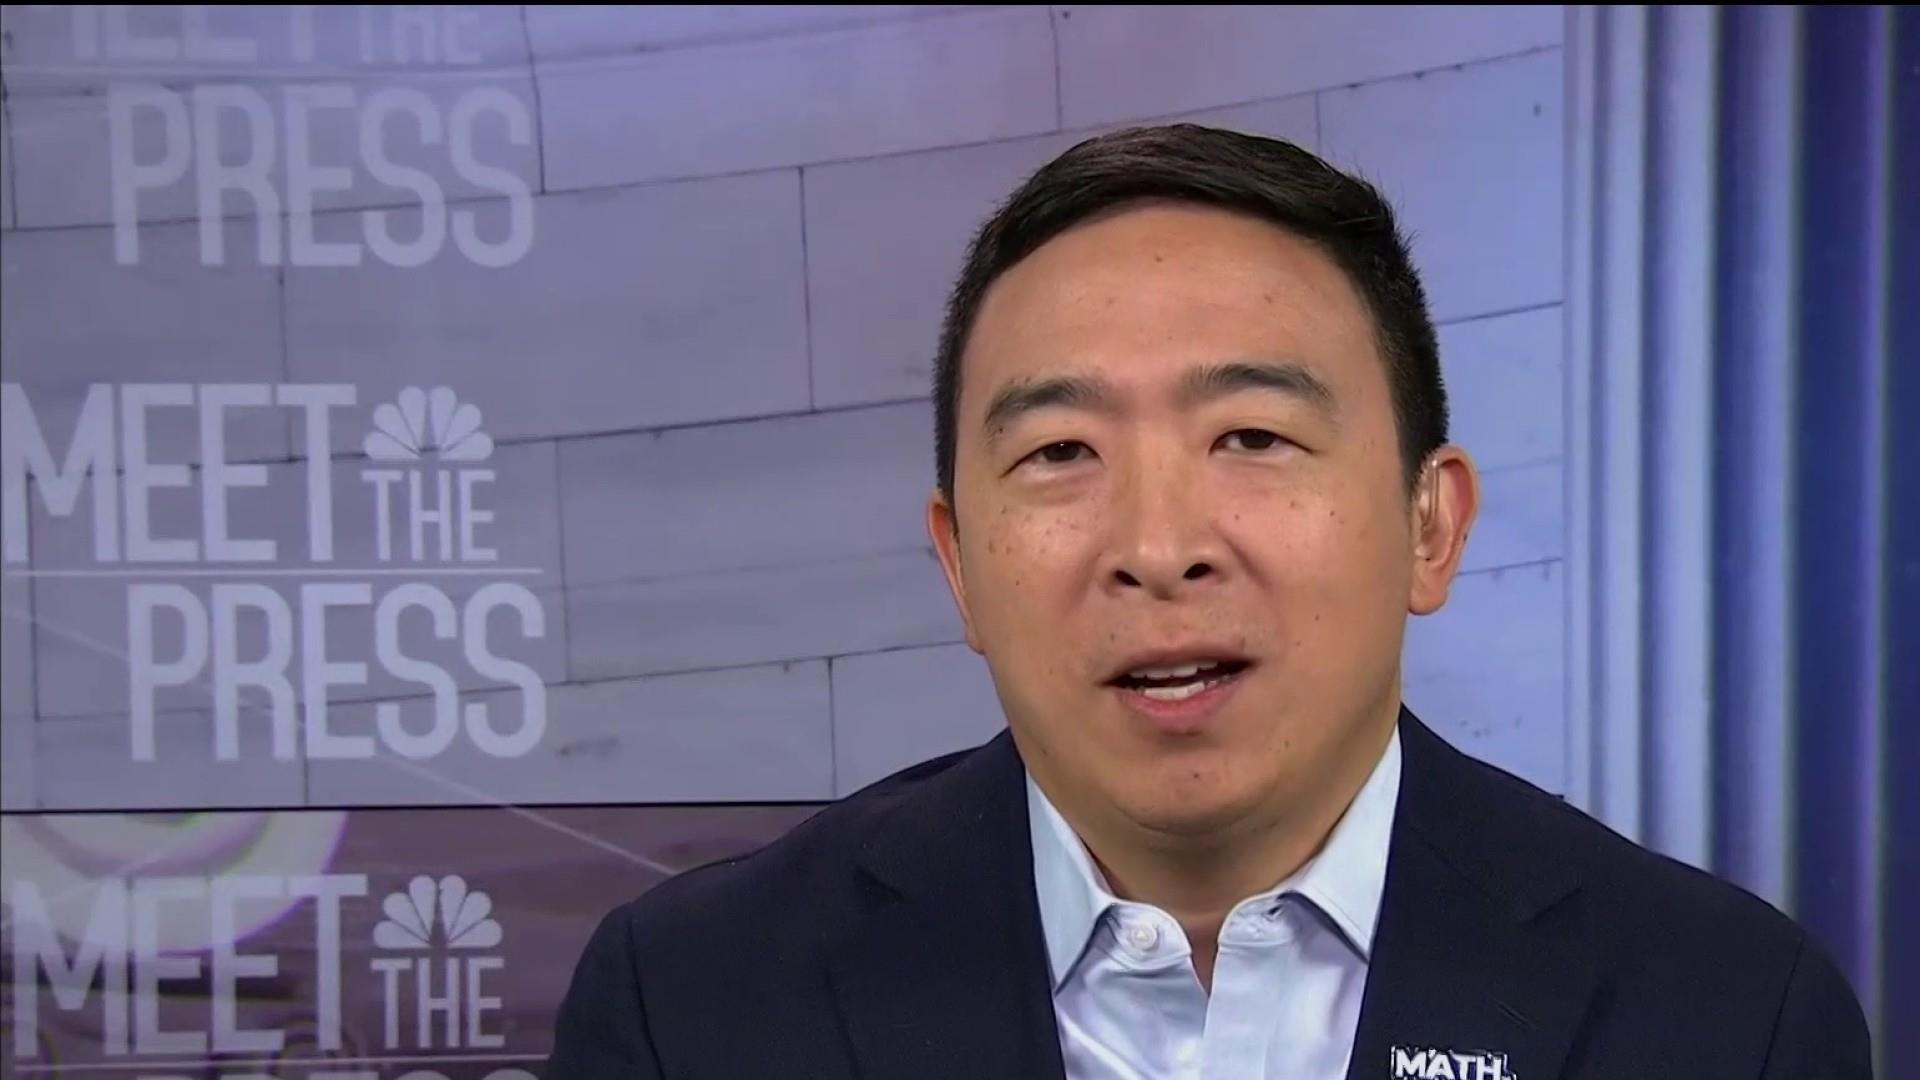 Andrew Yang says 'Americans are smart enough' to know when he's joking about his race